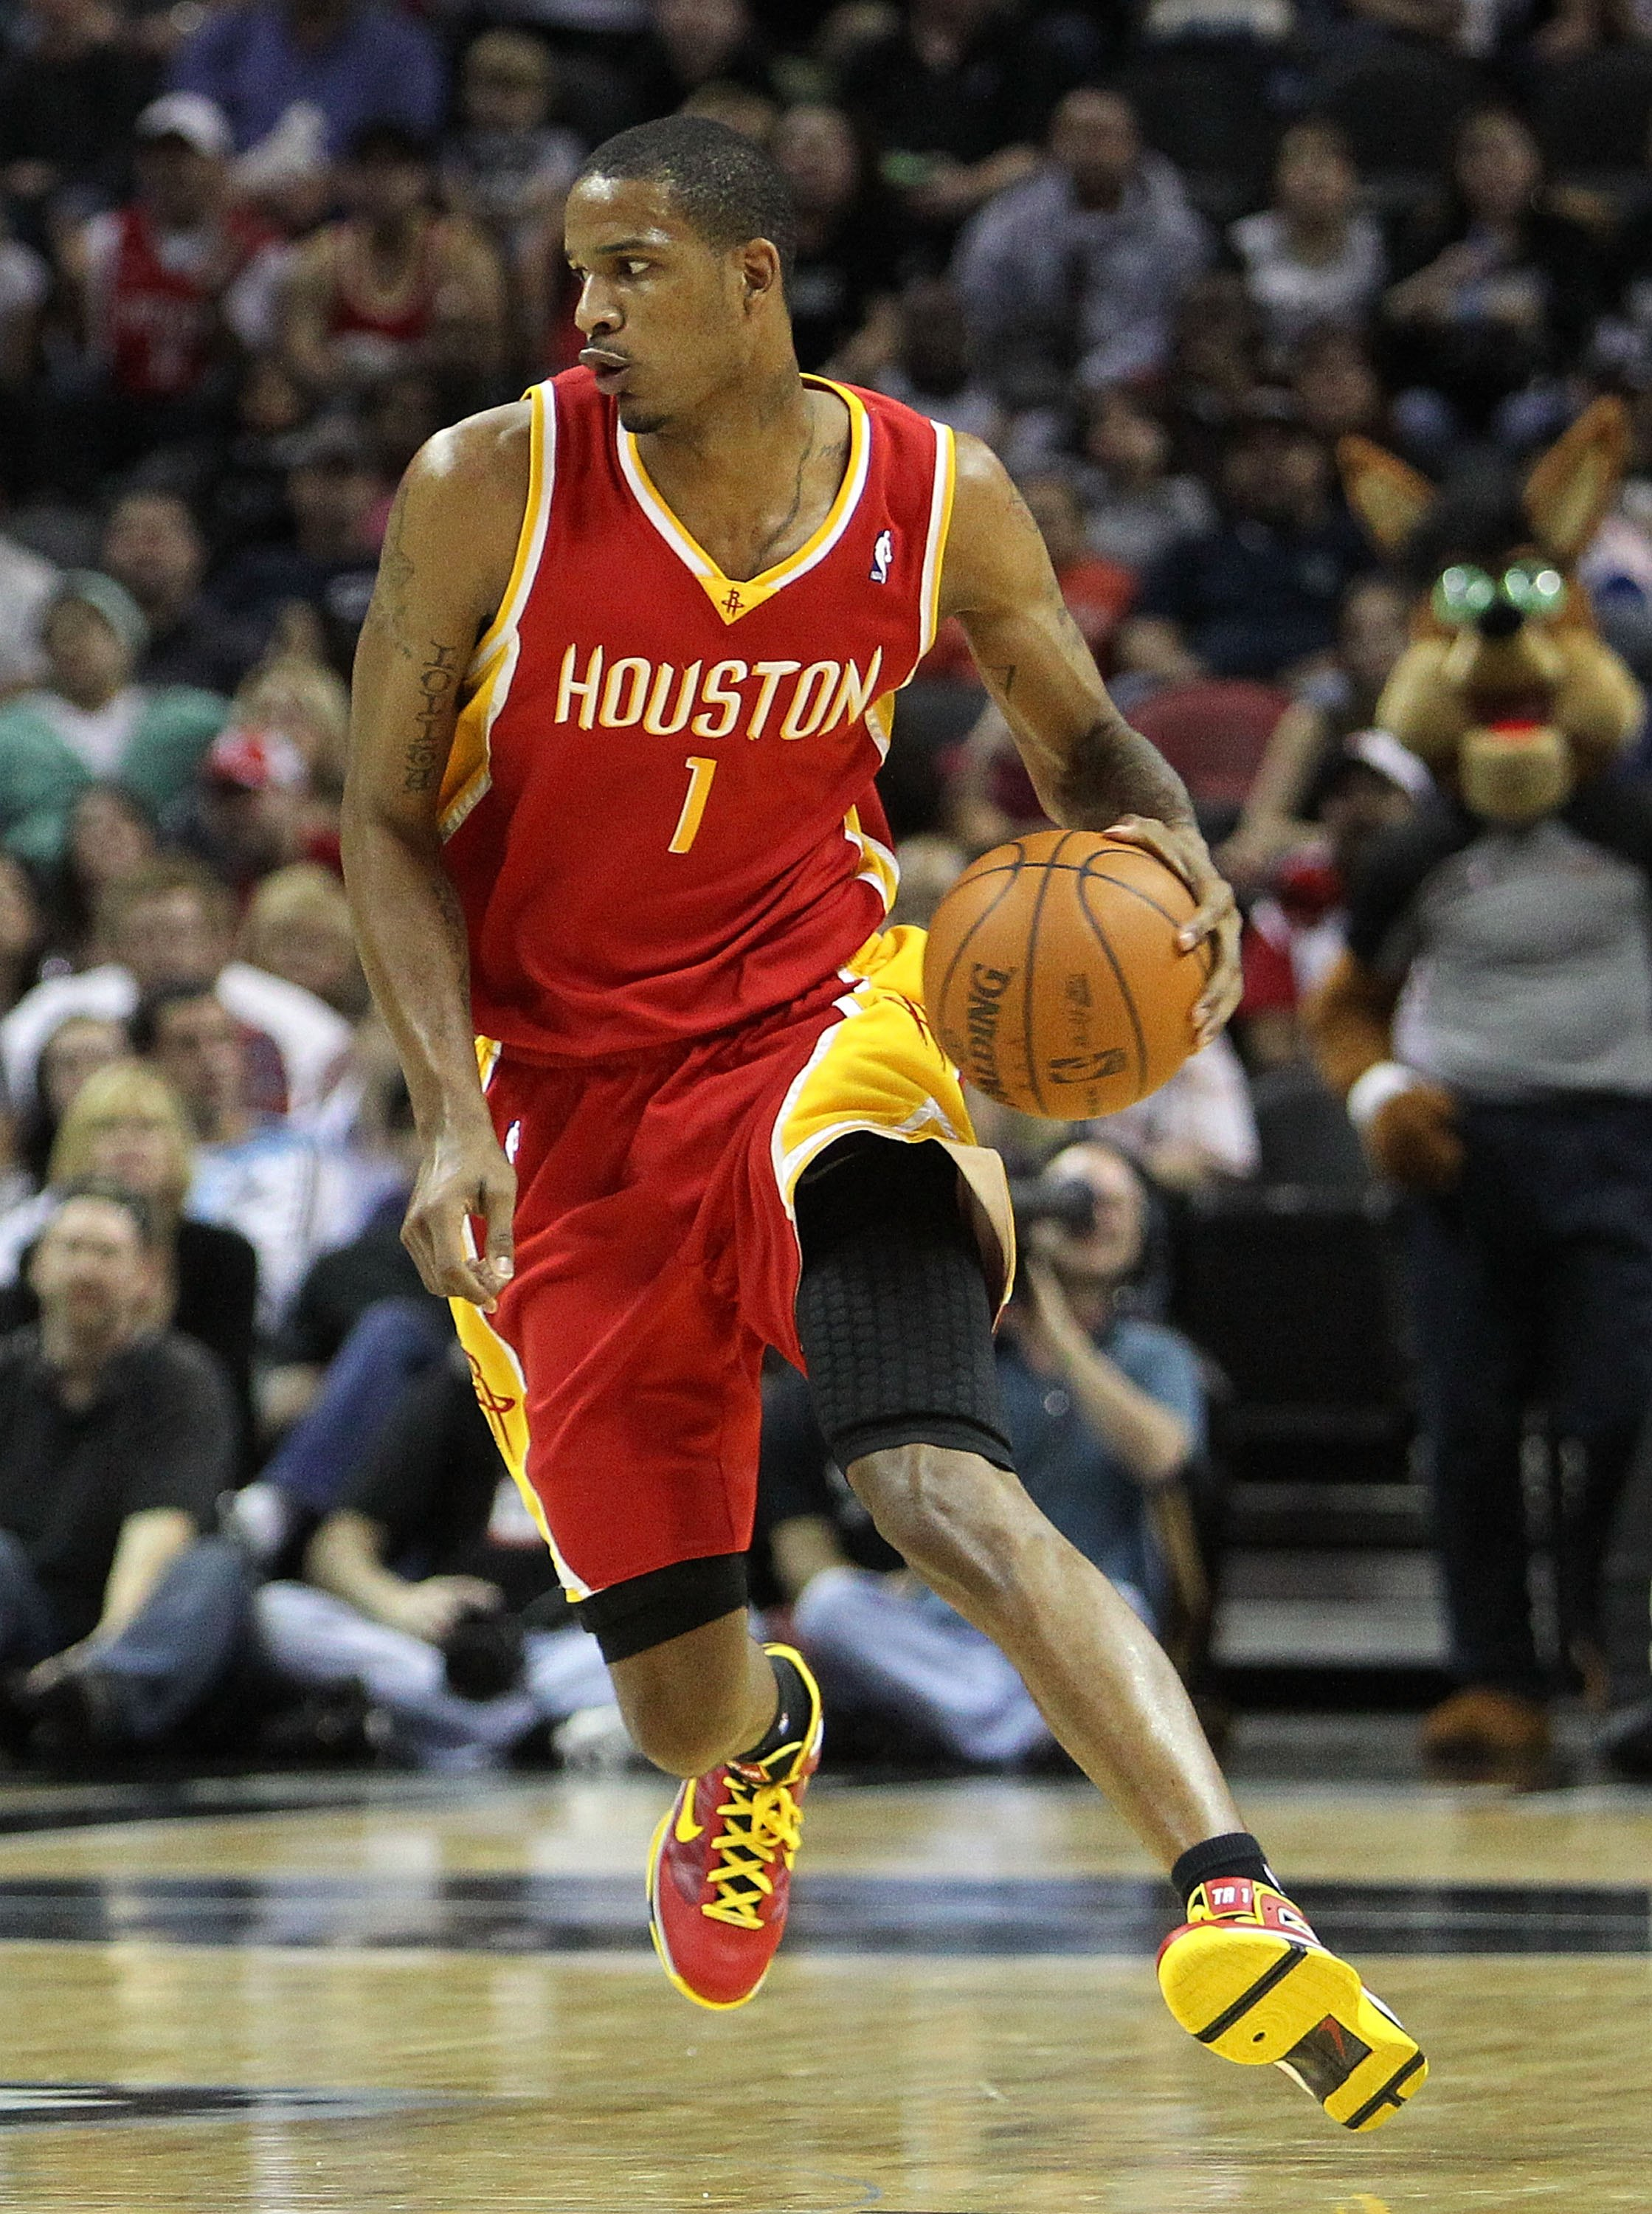 SAN ANTONIO - JANUARY 22:  Forward Trevor Ariza #1 of the Houston Rockets at AT&T Center on January 22, 2010 in San Antonio, Texas.  (Photo by Ronald Martinez/Getty Images)